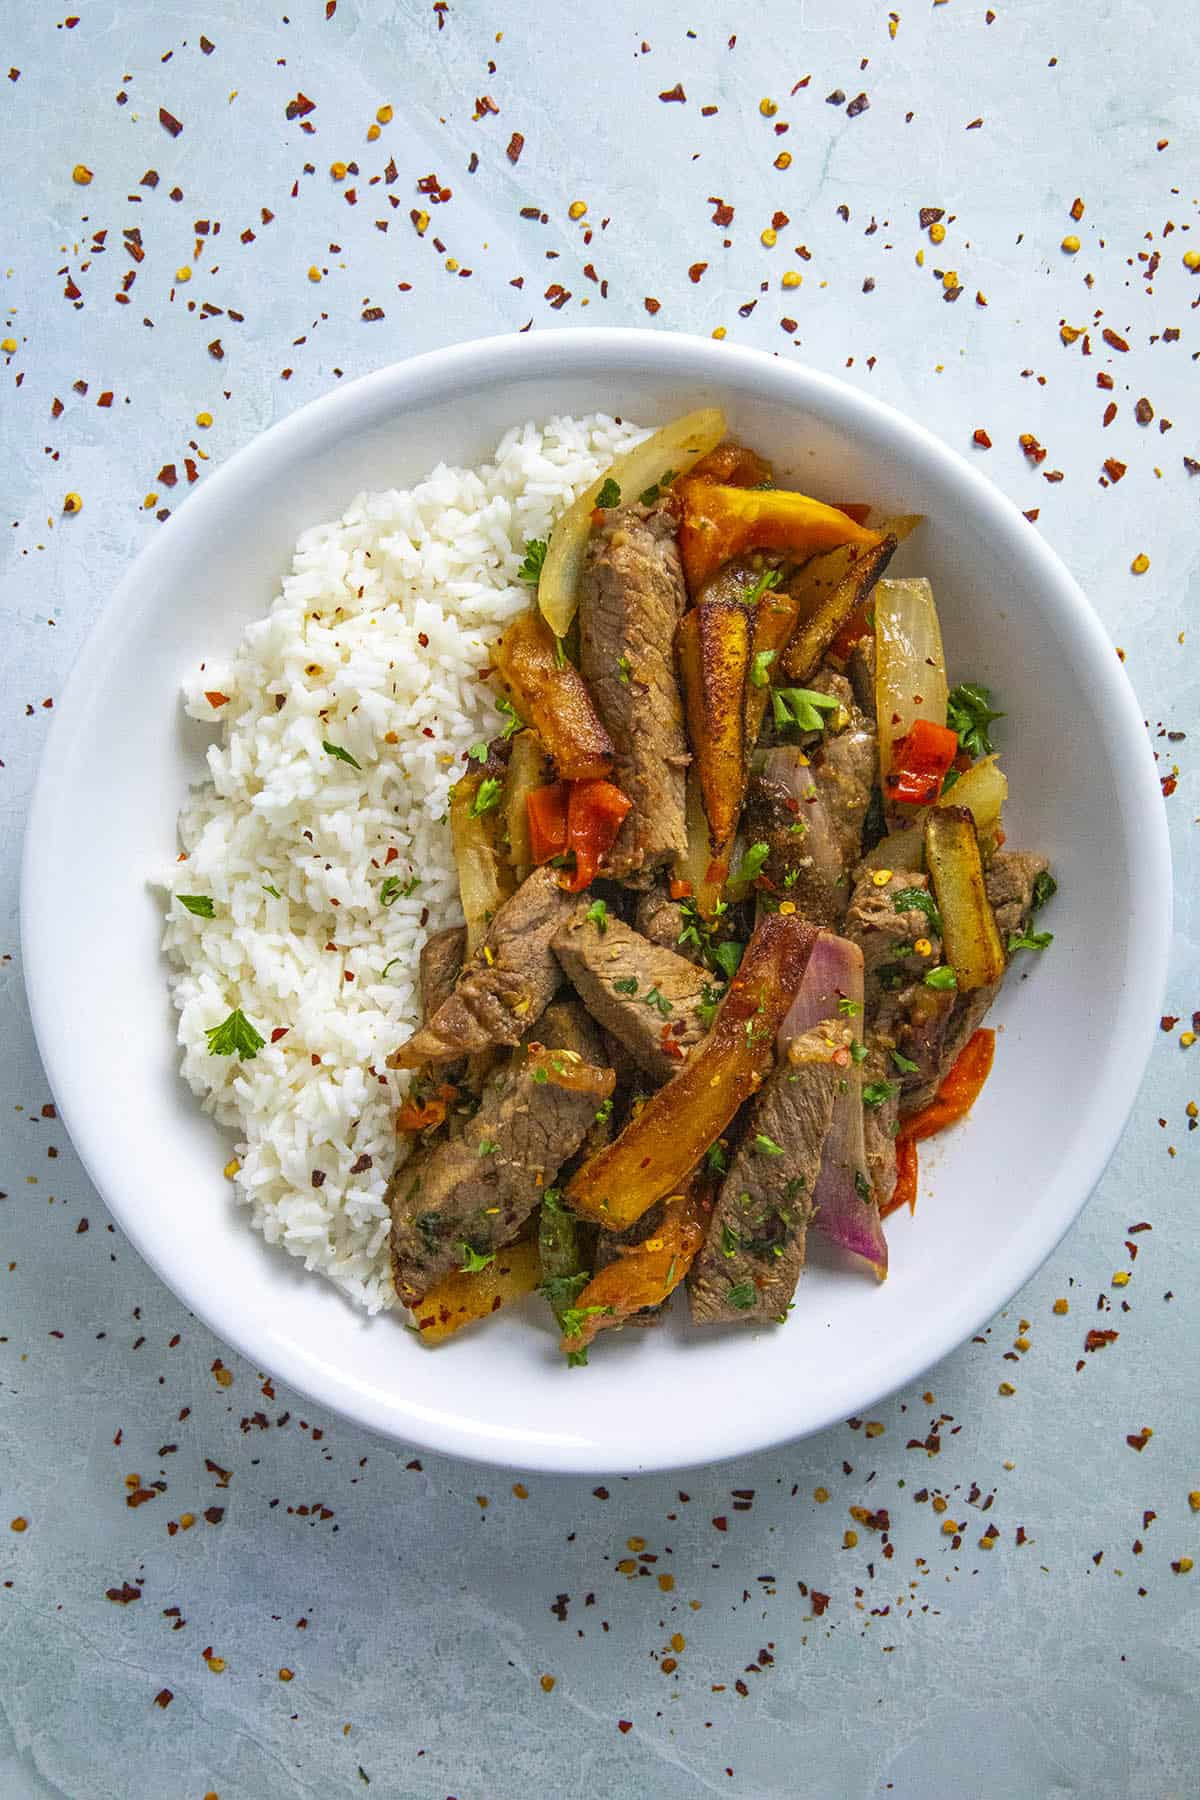 Peruvian Beef Stir Fry with French Fries (Lomo Saltado) in a bow over rice